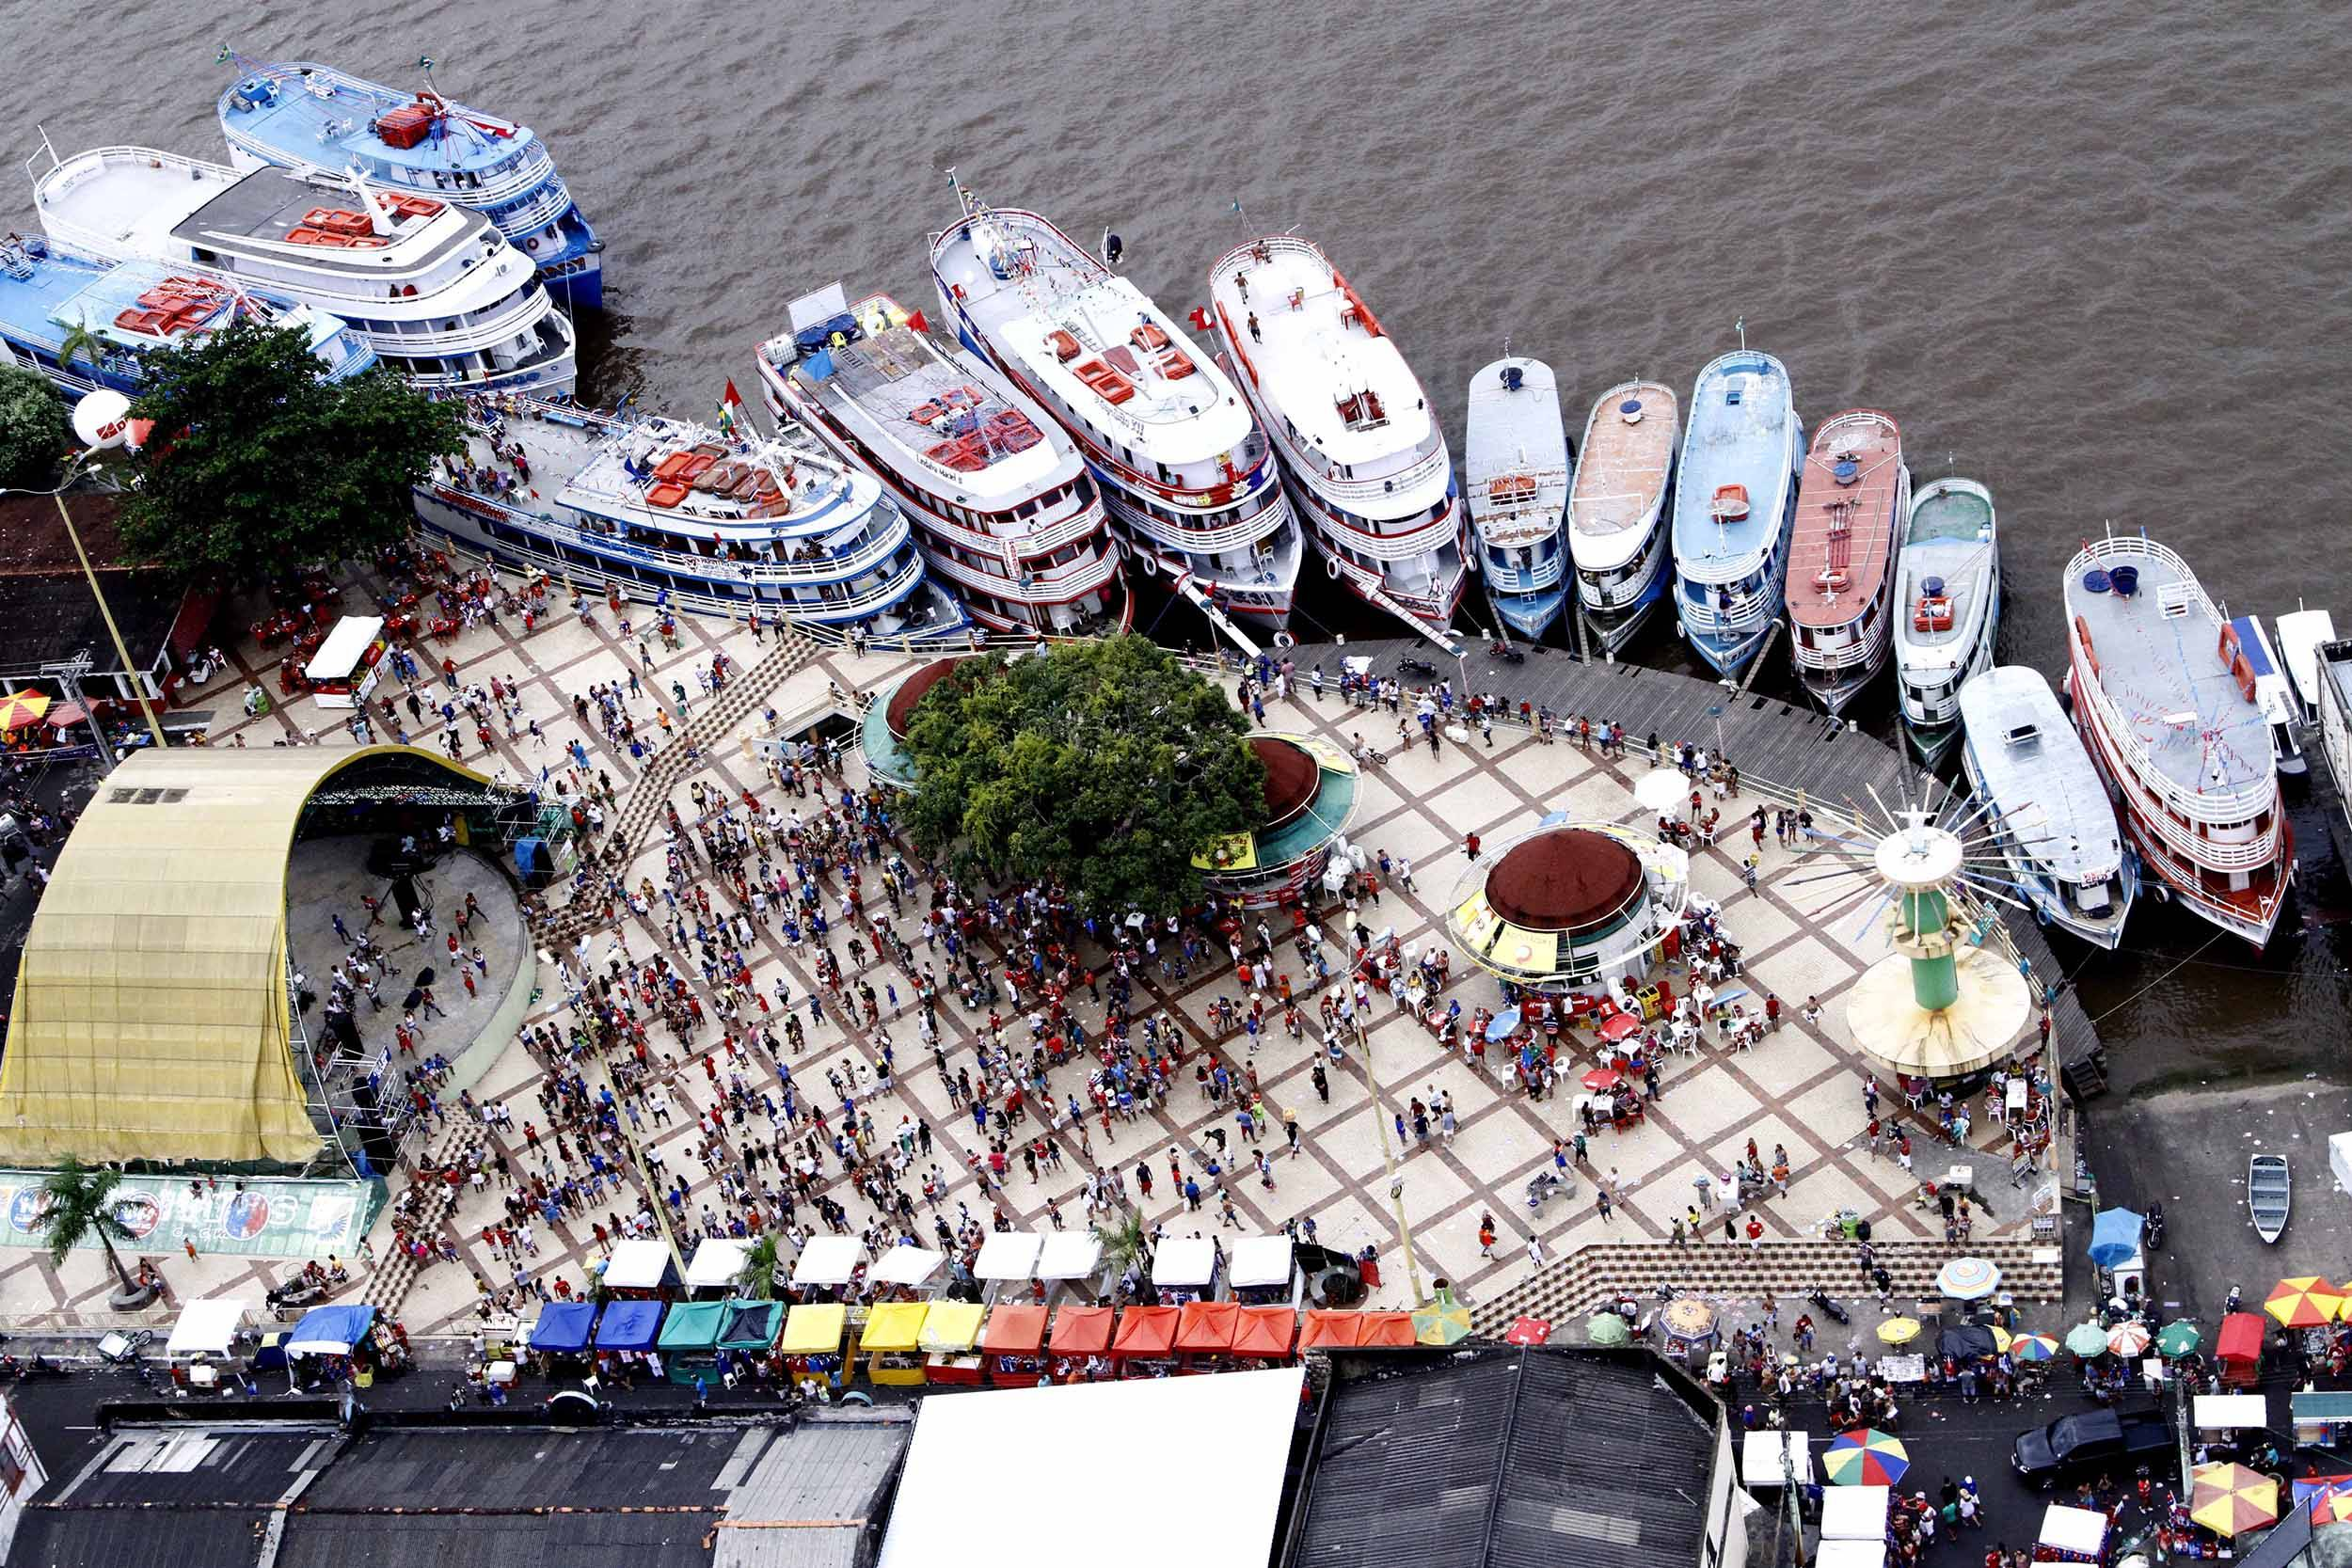 The festival takes place annually in the last week of June and attracts an average of 60,000 tourists per year. Players arrive in the city on board boats and move the island's economy, valuing popular culture.